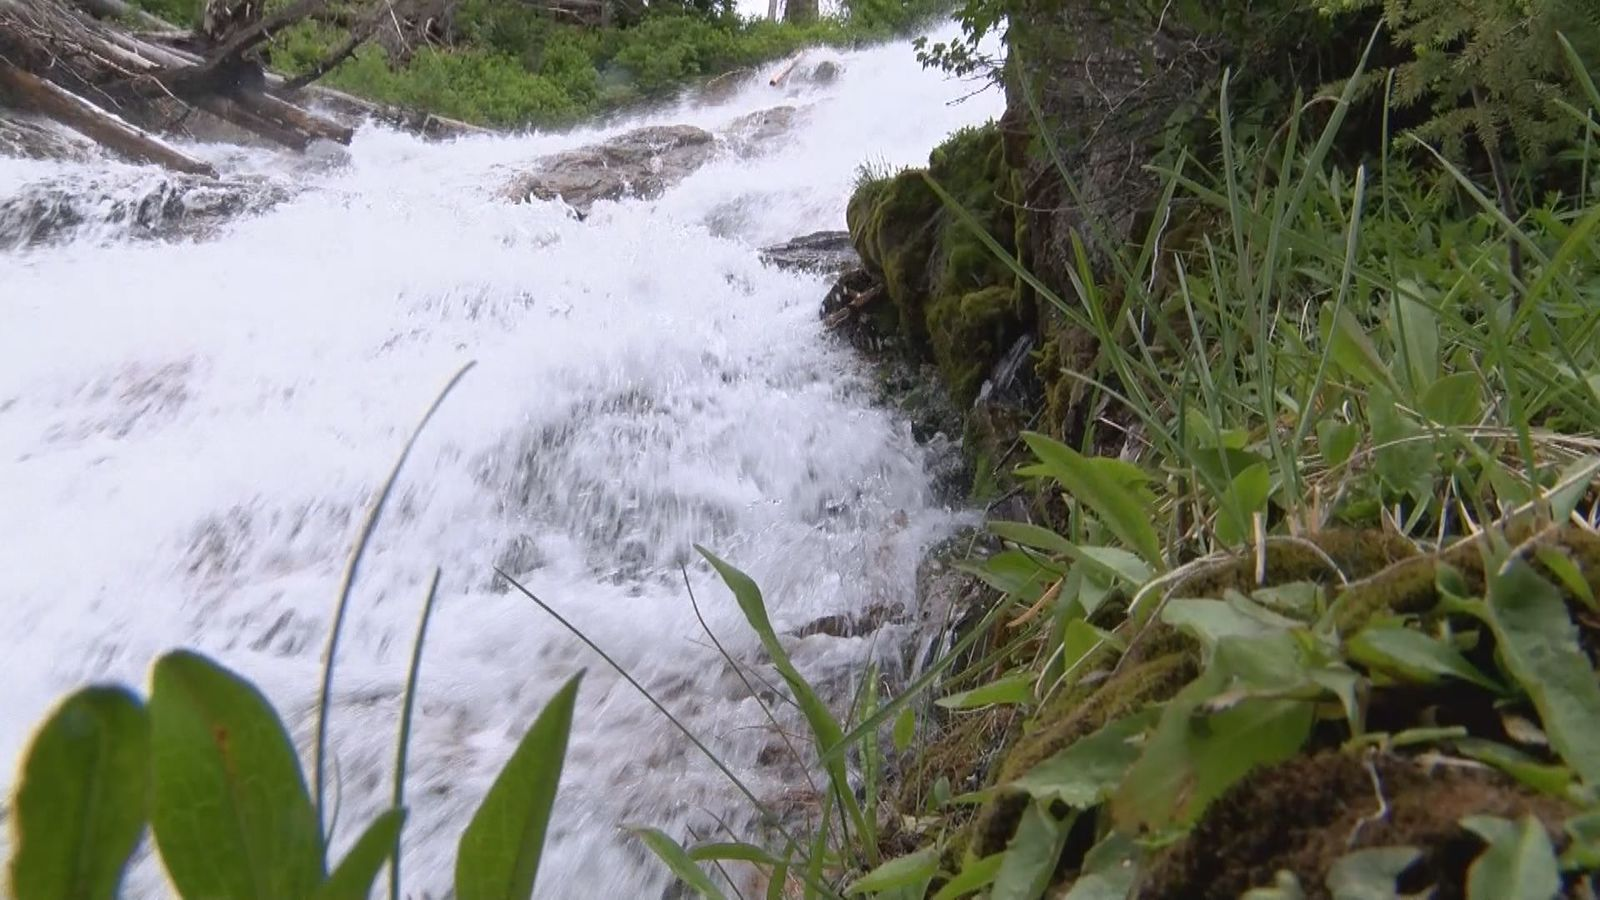 The water provides abundant plant life.